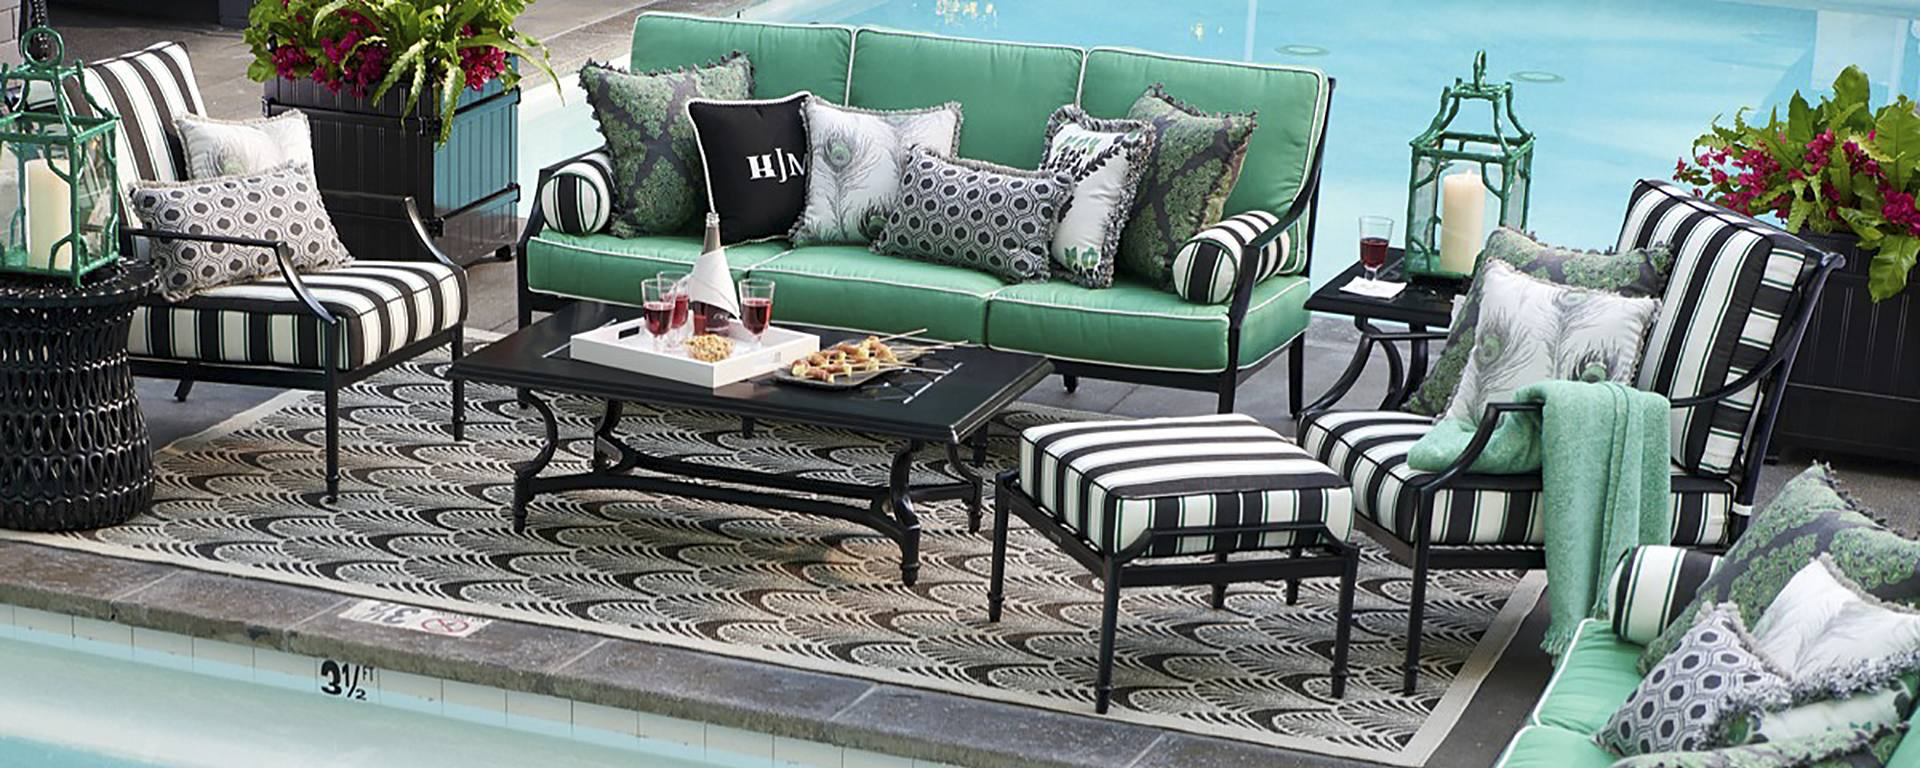 We Demand A Lot From Our Outdoor Living Areas And The Fabrics That Fill Them With Vibrancy They Must Exude Rich Dimension Color Of Indoor